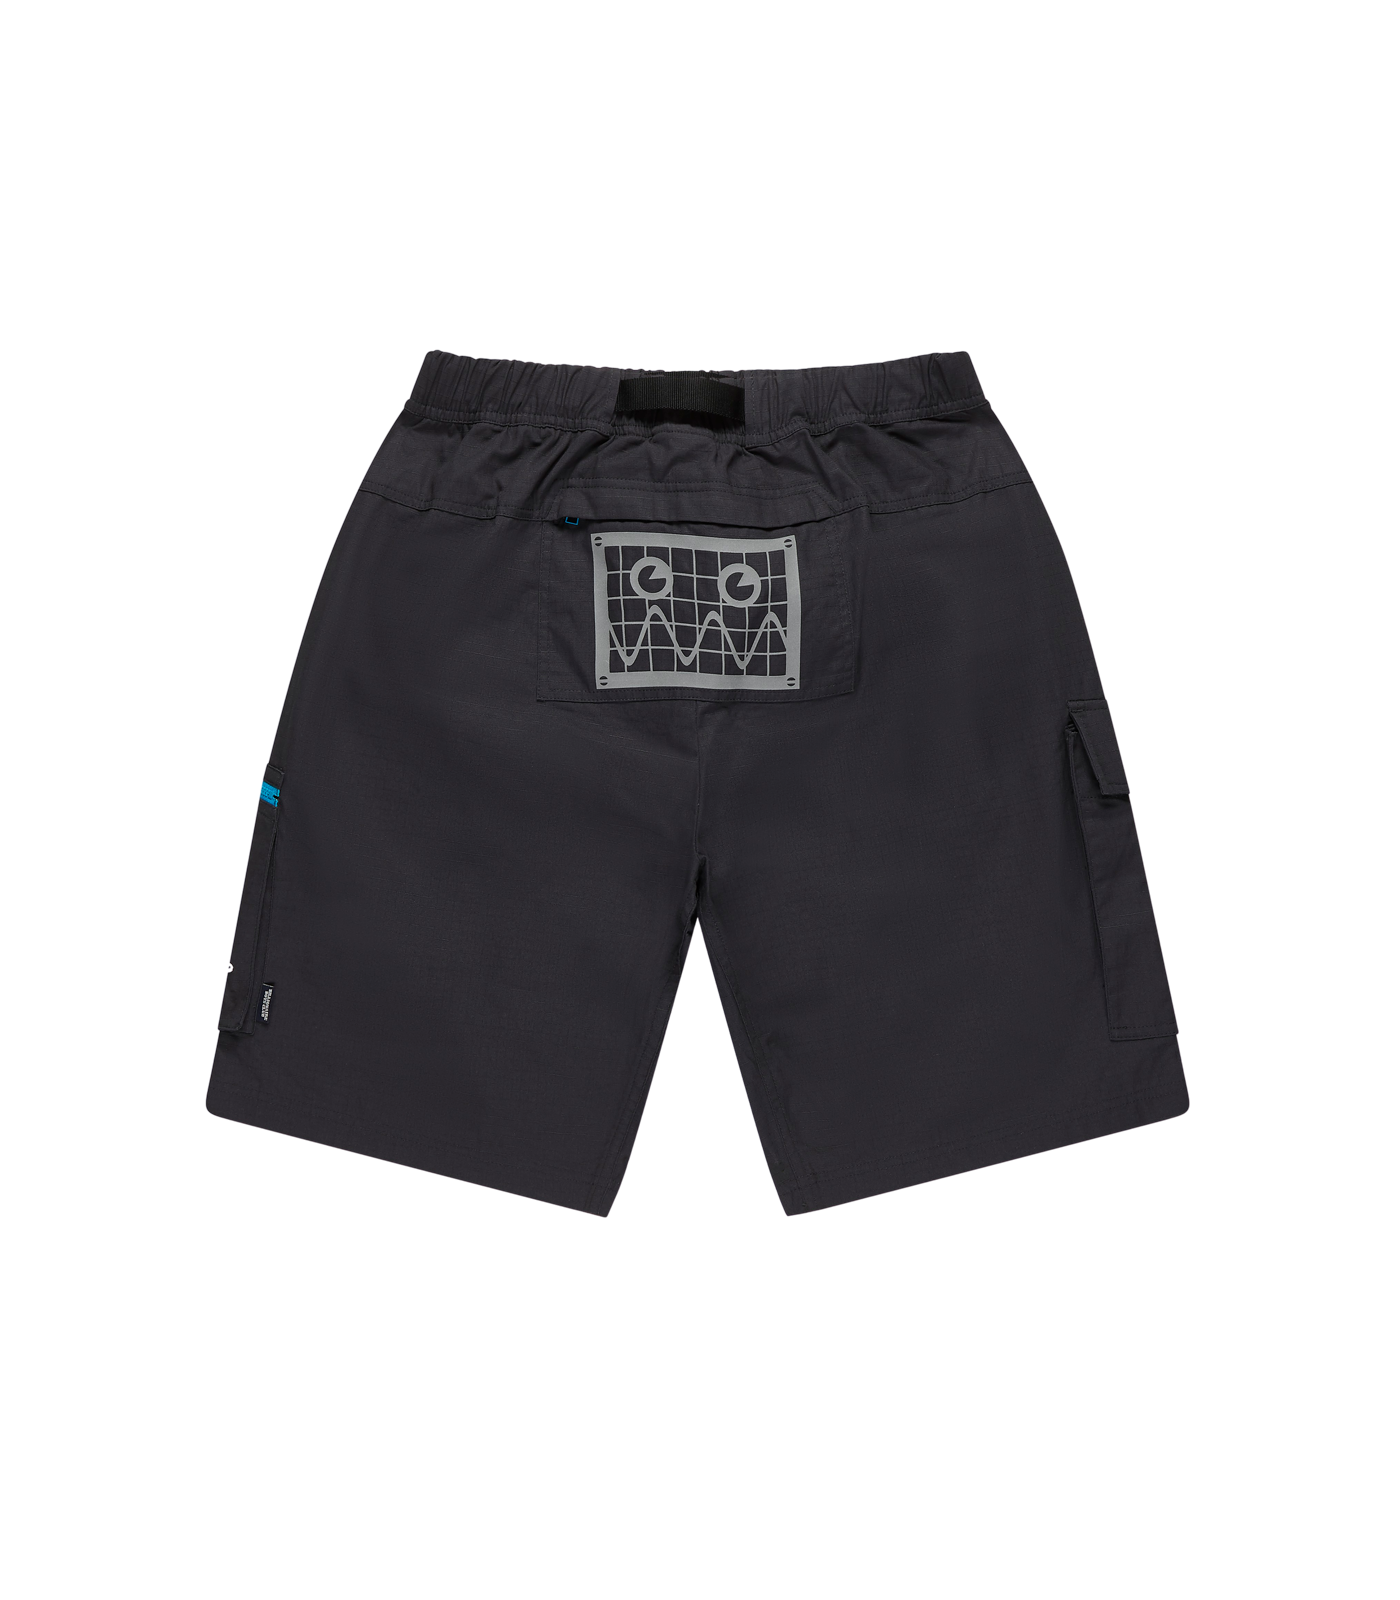 MULTI POCKET CLIMBING SHORTS - NAVY